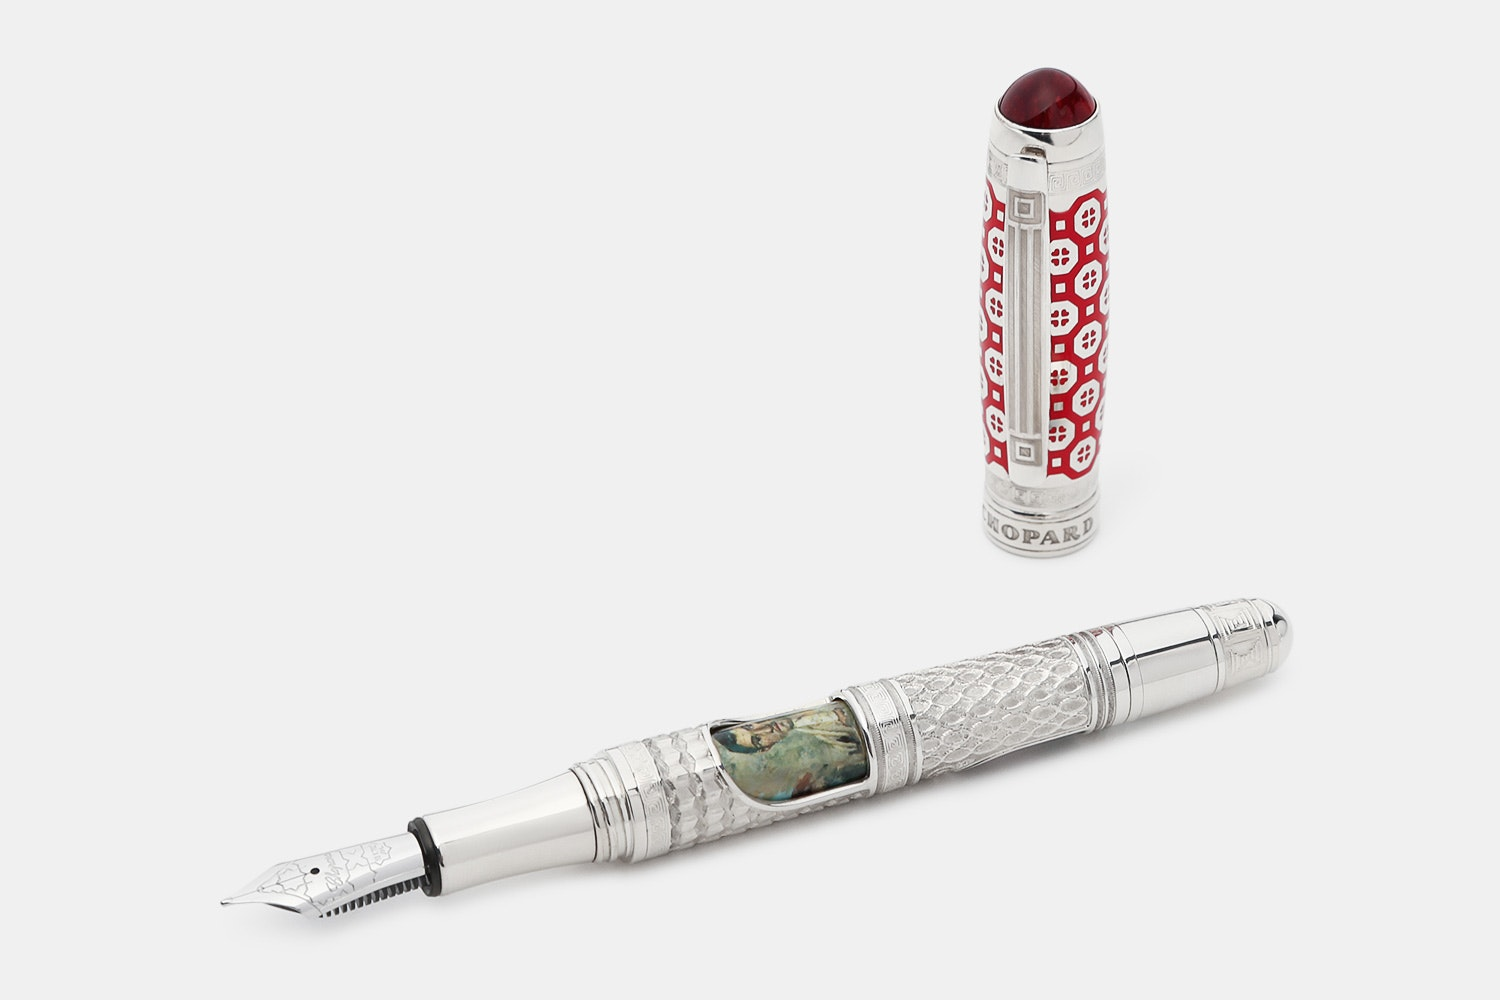 Chopard Limited-Edition Pompeii Fountain Pen